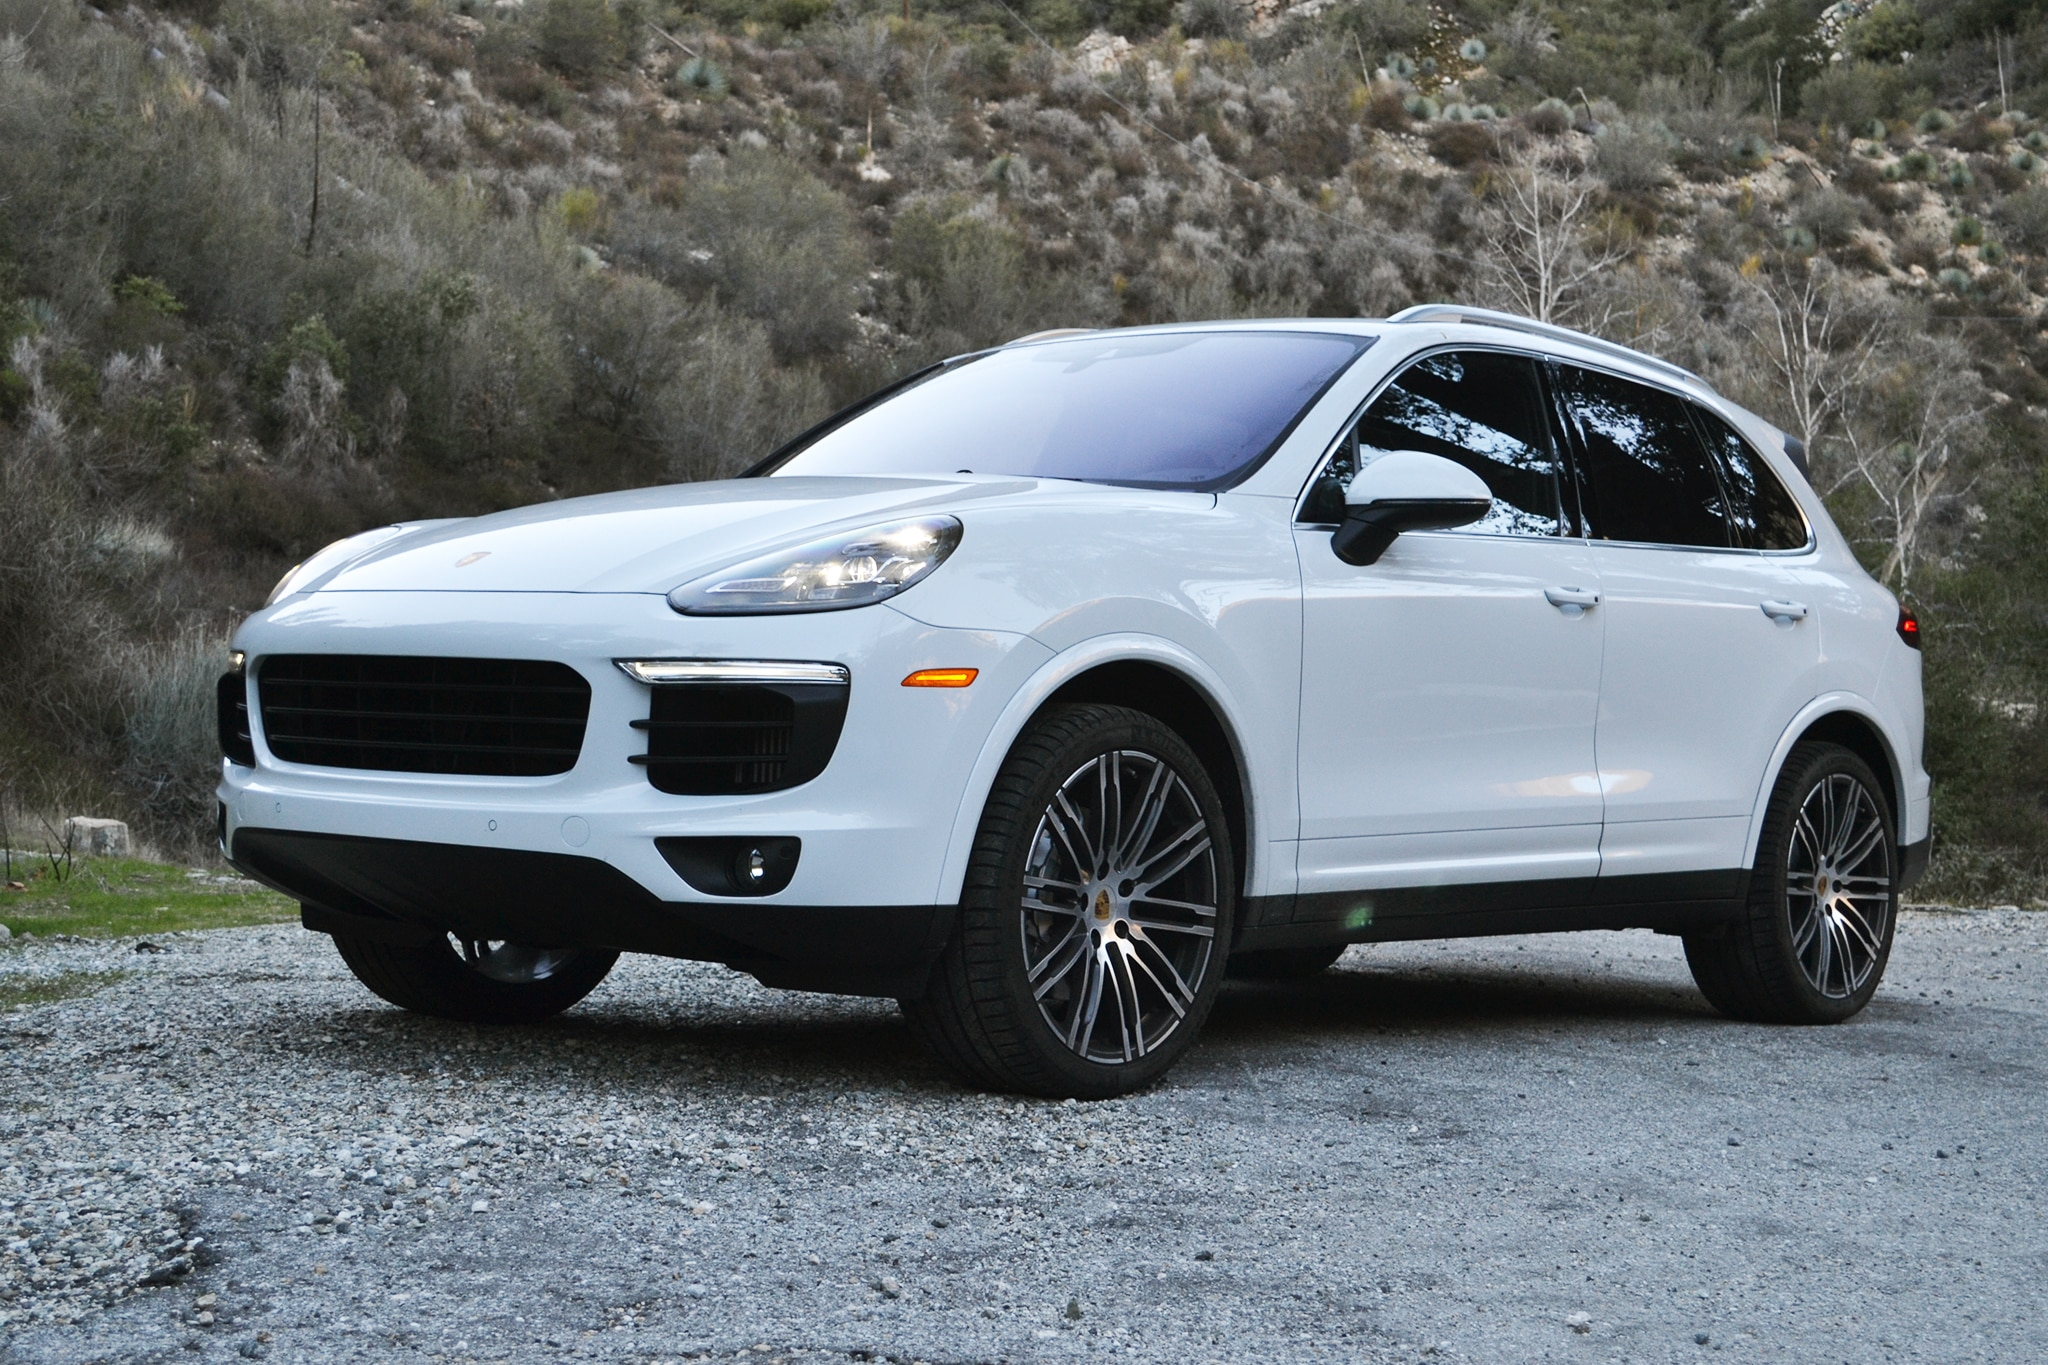 2017 Porsche Cayenne S One Weekend Review | Automobile ...